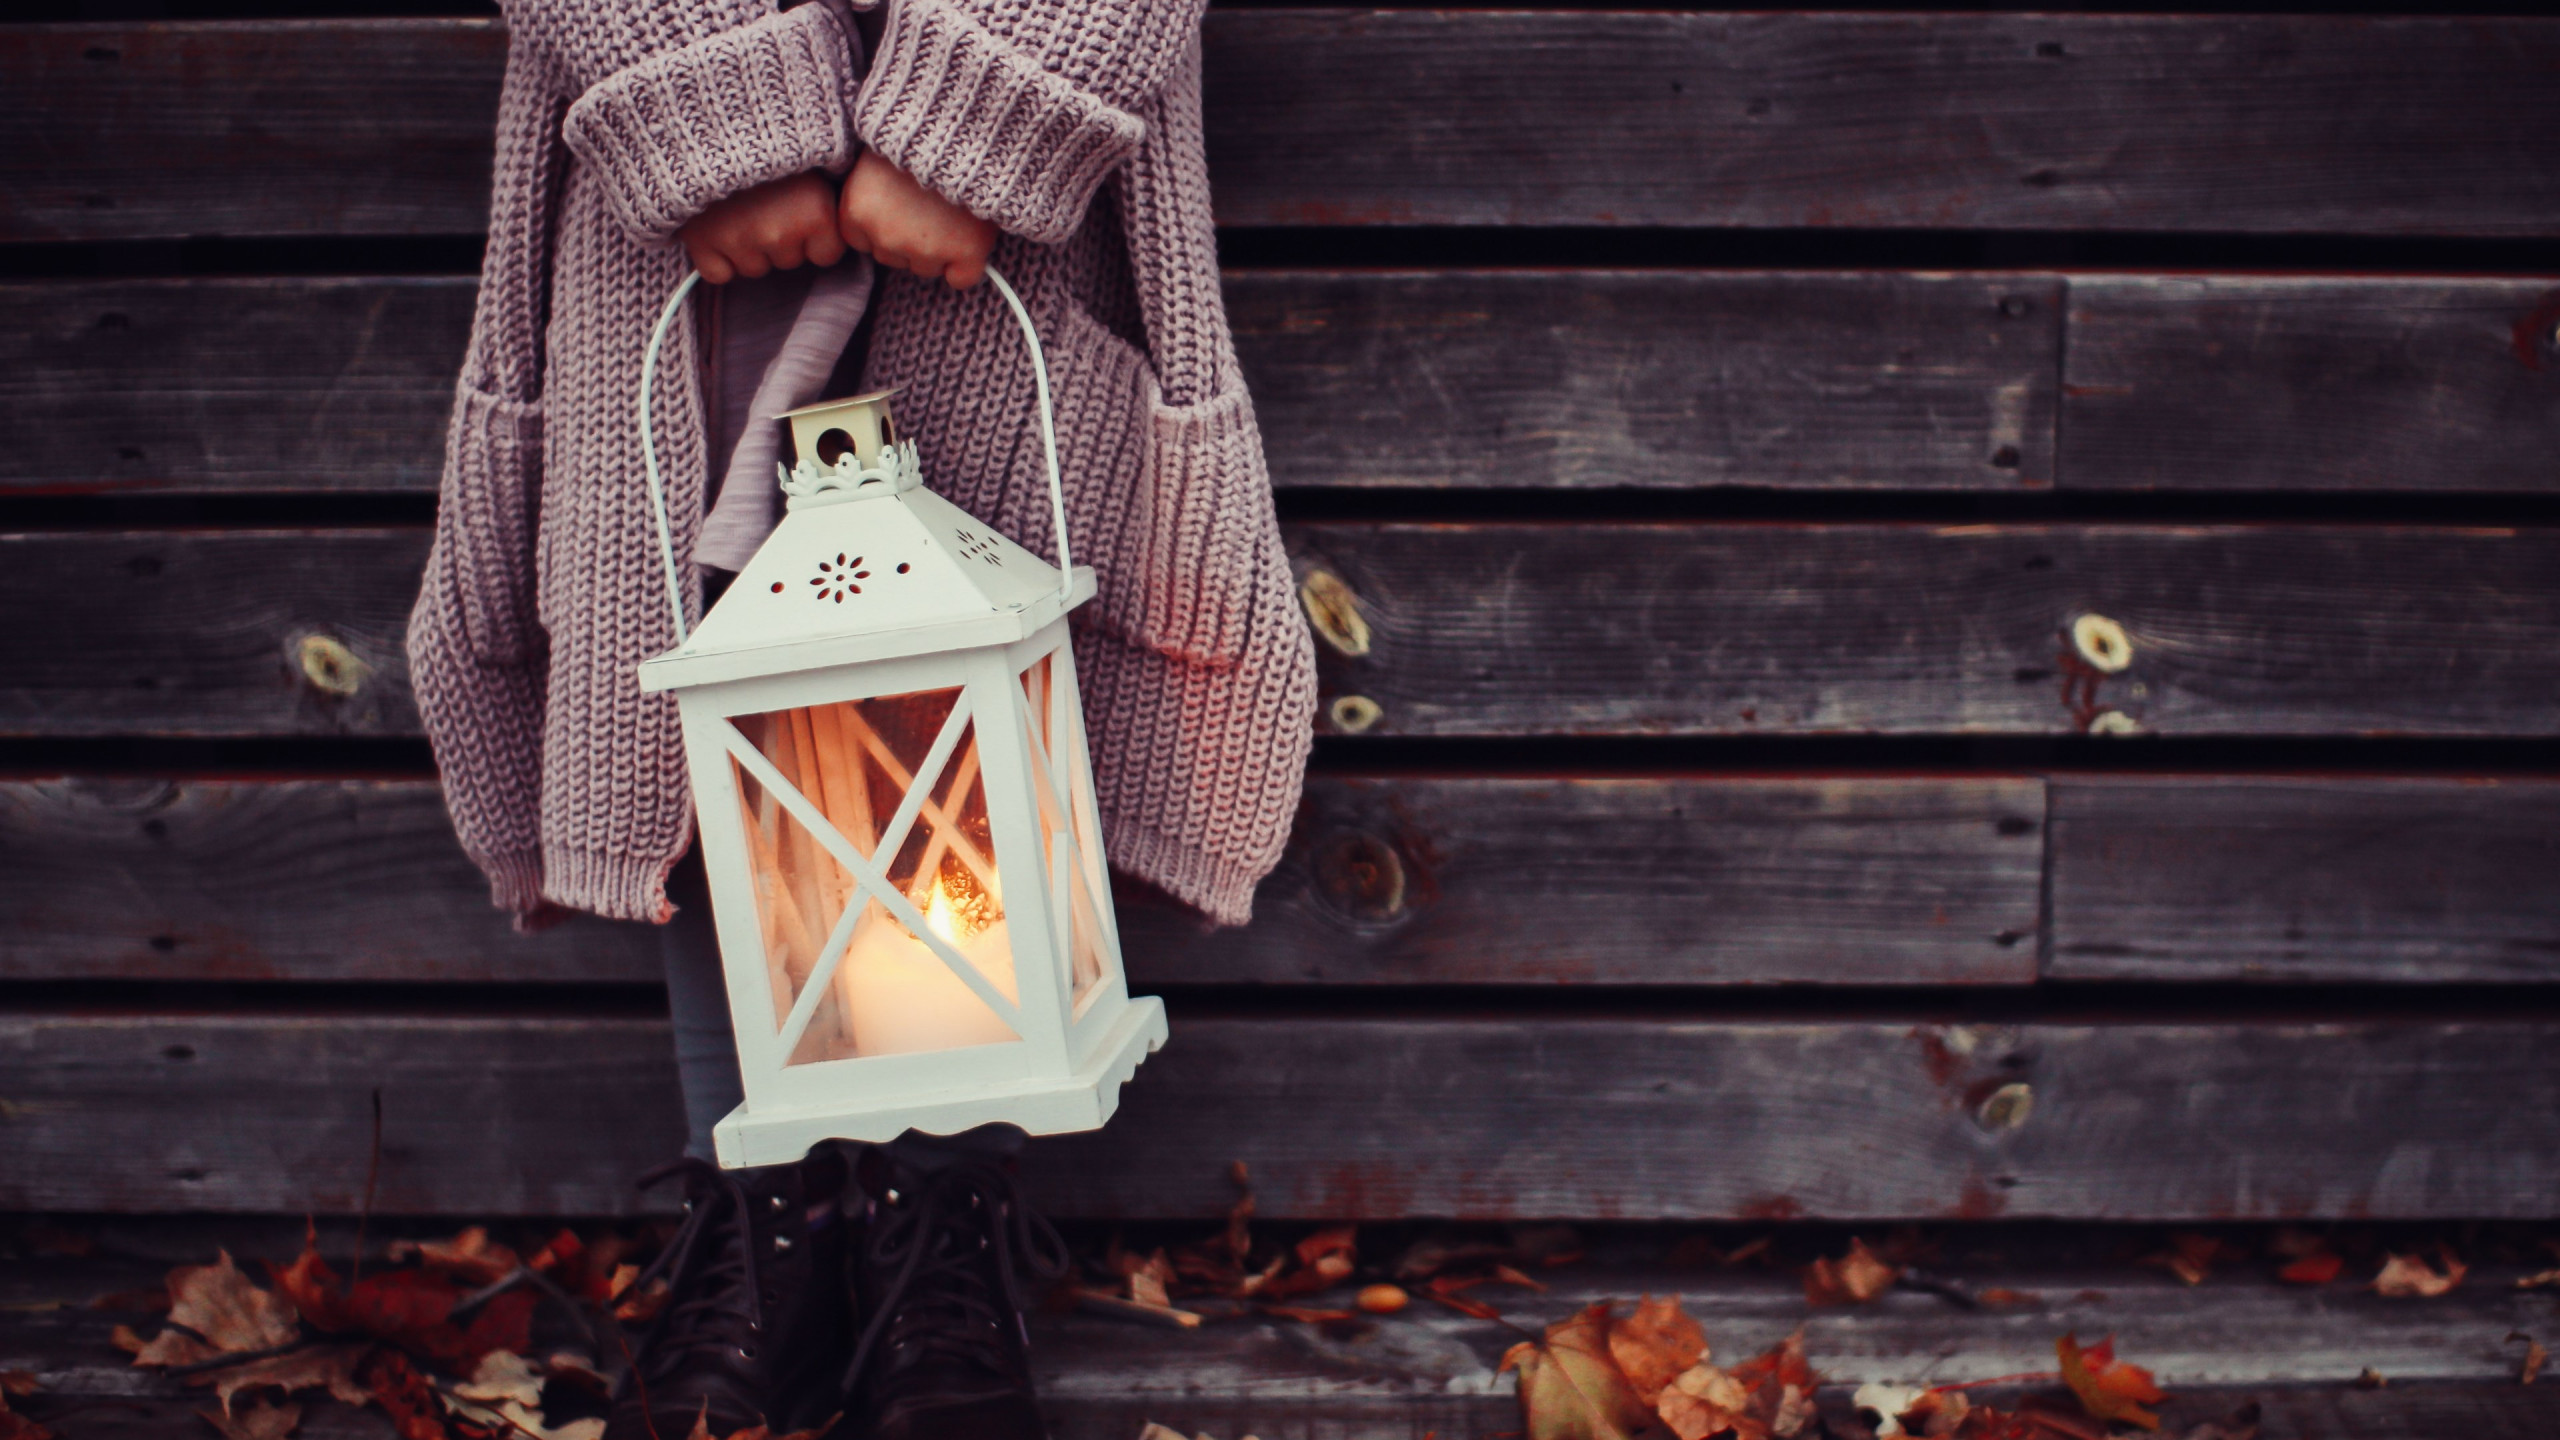 Autumn leaves and a child with lantern | 2560x1440 wallpaper